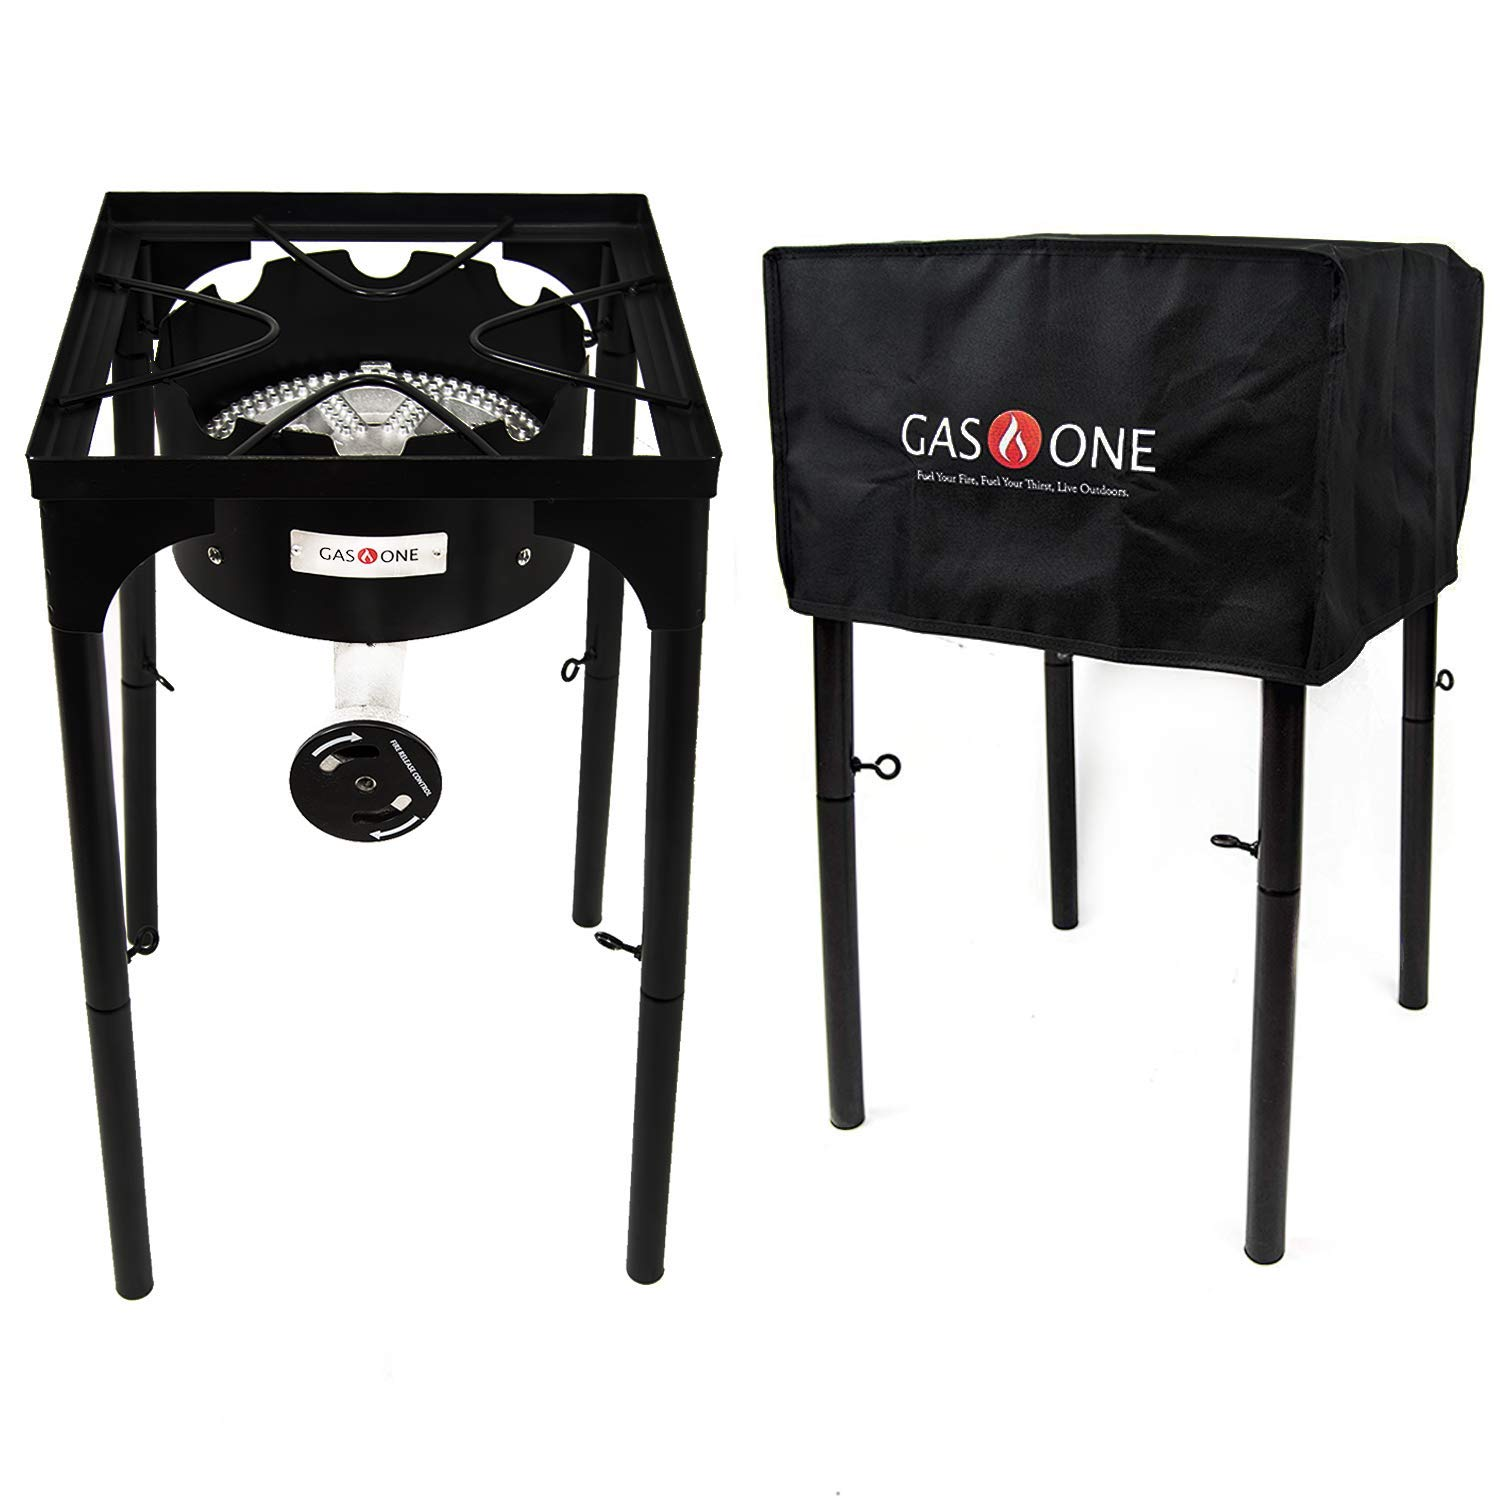 Gas One Propane Burner With Cover 200,000-BTU Brewing Burner with Adjustable Height CSA Listed 0-20PSI High Pressure Camp Stove